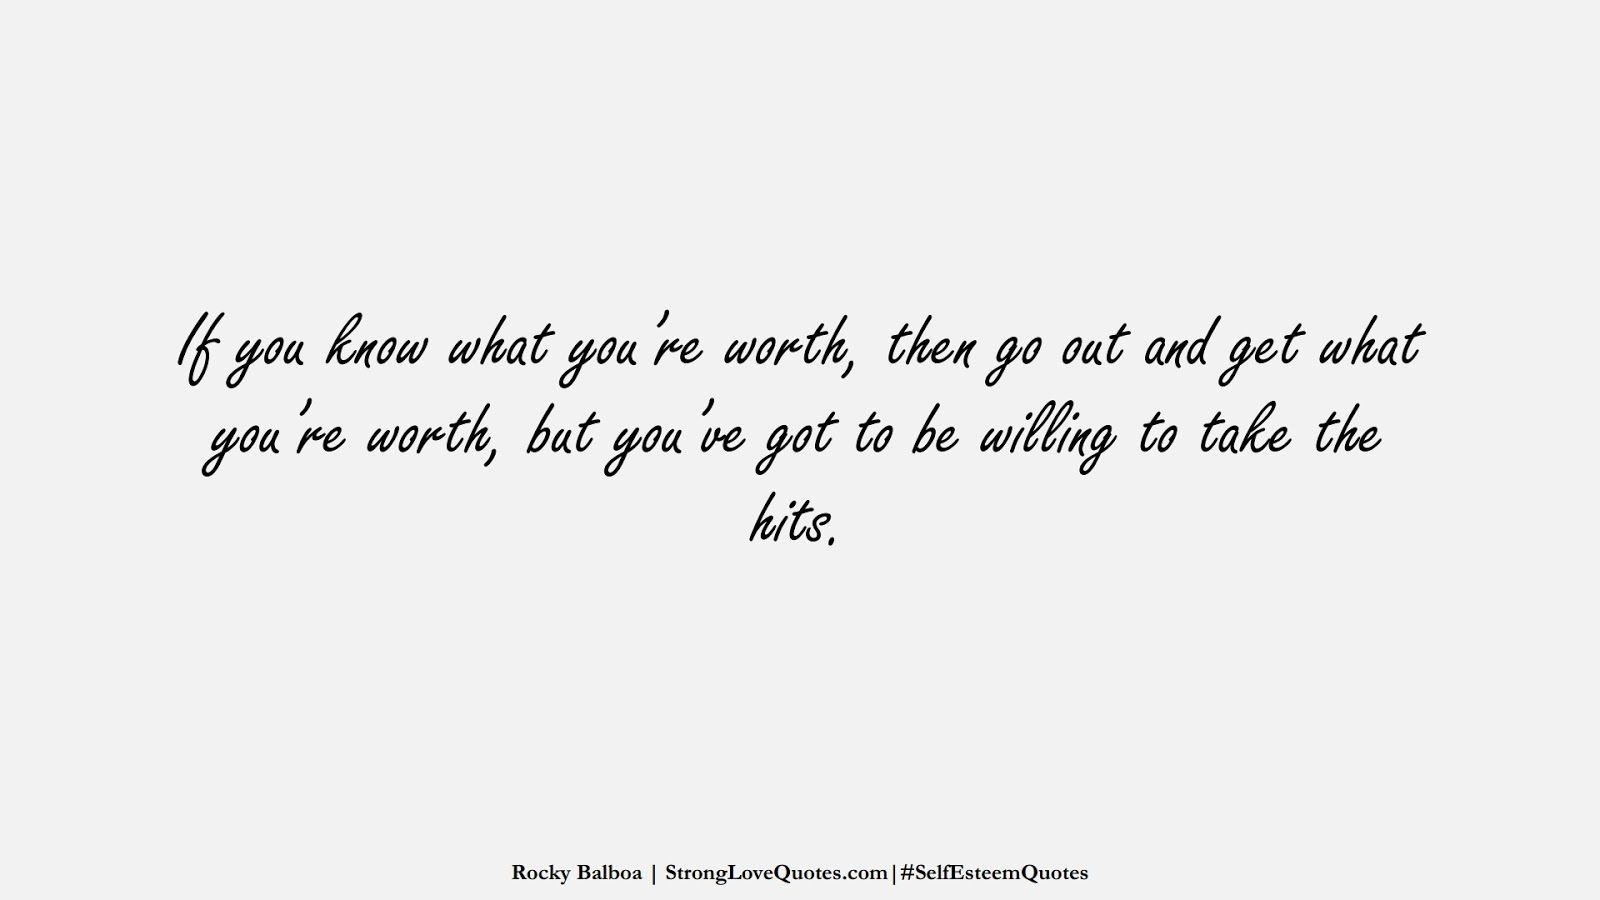 If you know what you're worth, then go out and get what you're worth, but you've got to be willing to take the hits. (Rocky Balboa);  #SelfEsteemQuotes